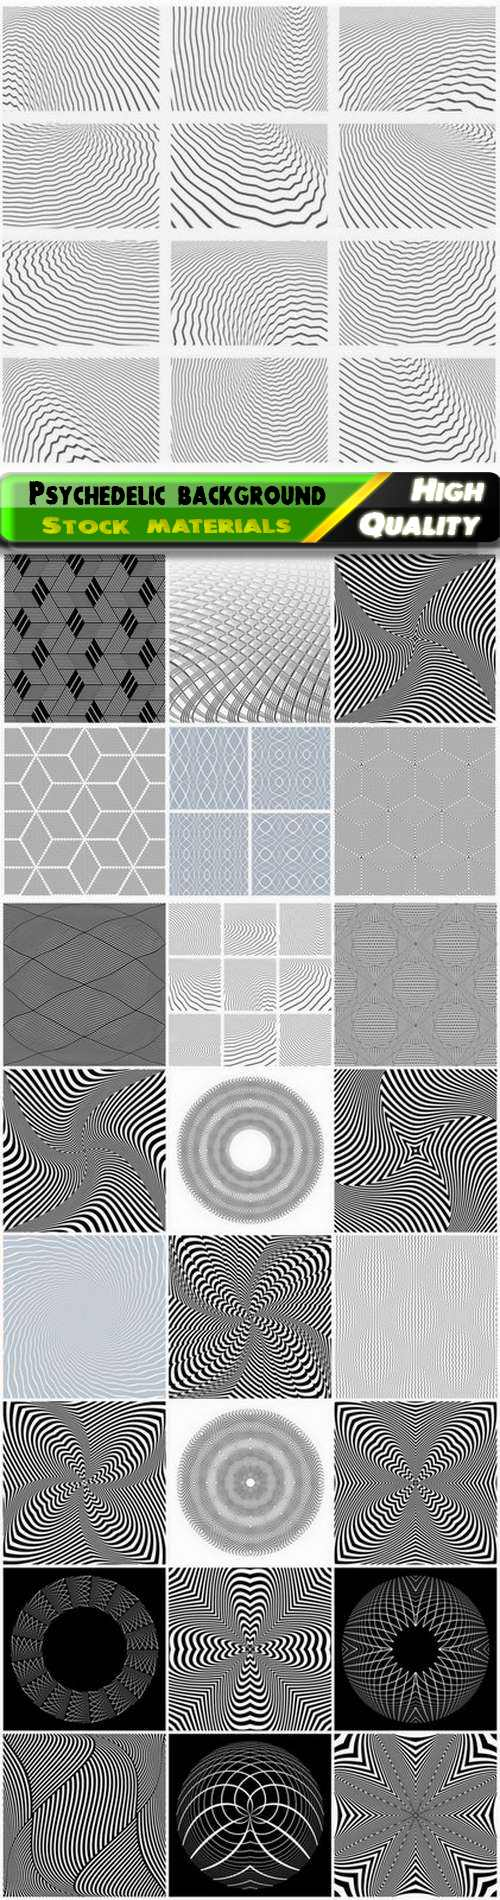 Optical Illusion clipart linear Eps psychedelic background with linear